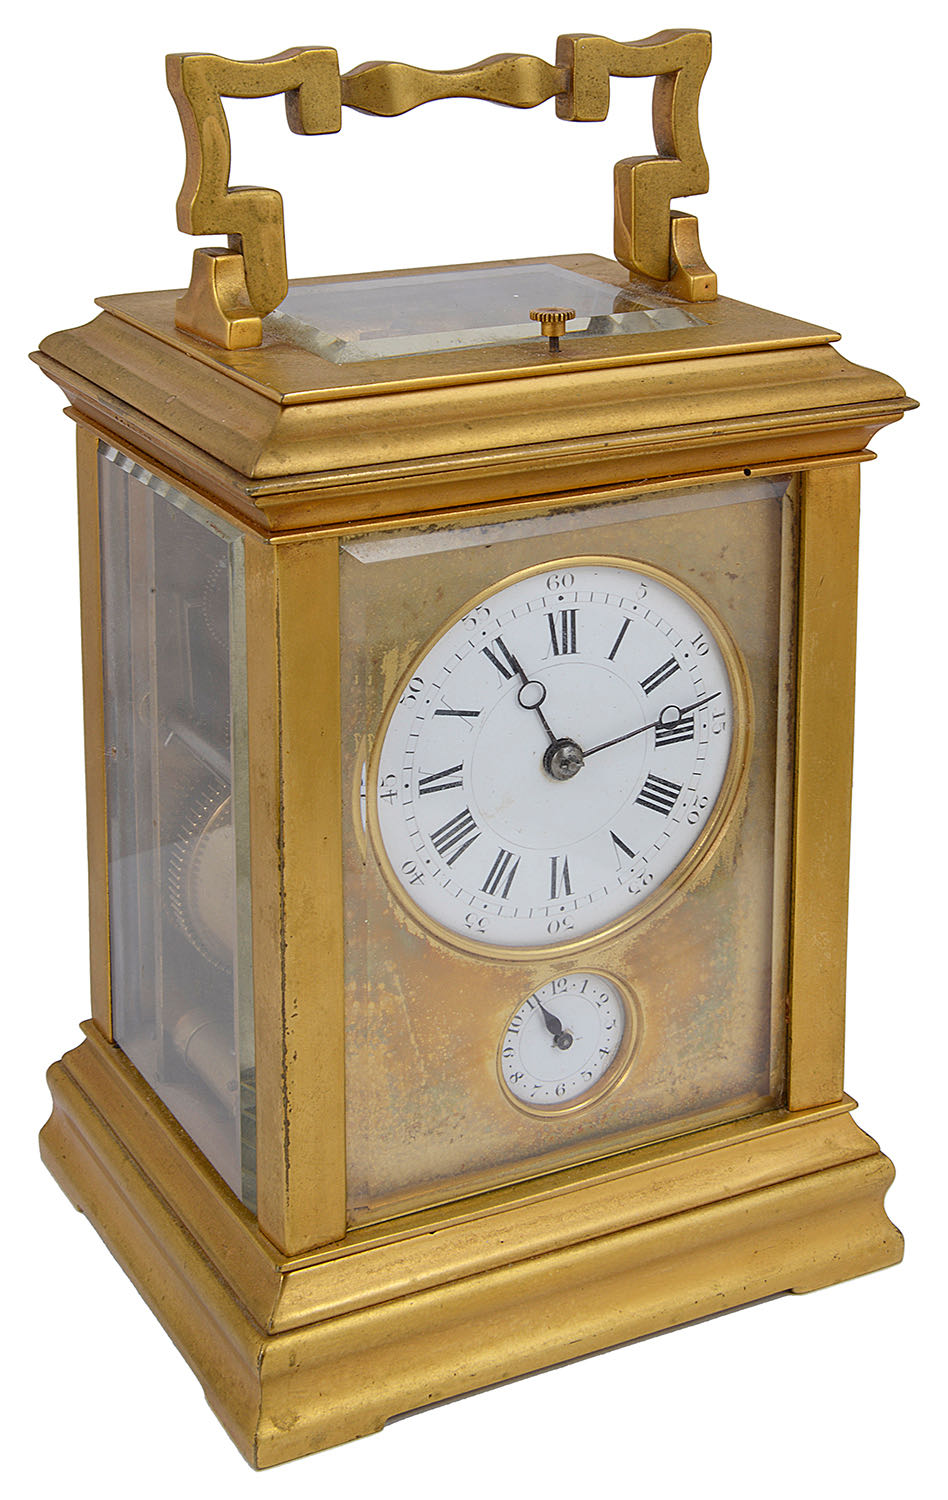 Lot 24 - A late 19th century French ormolu repeating carriage clock